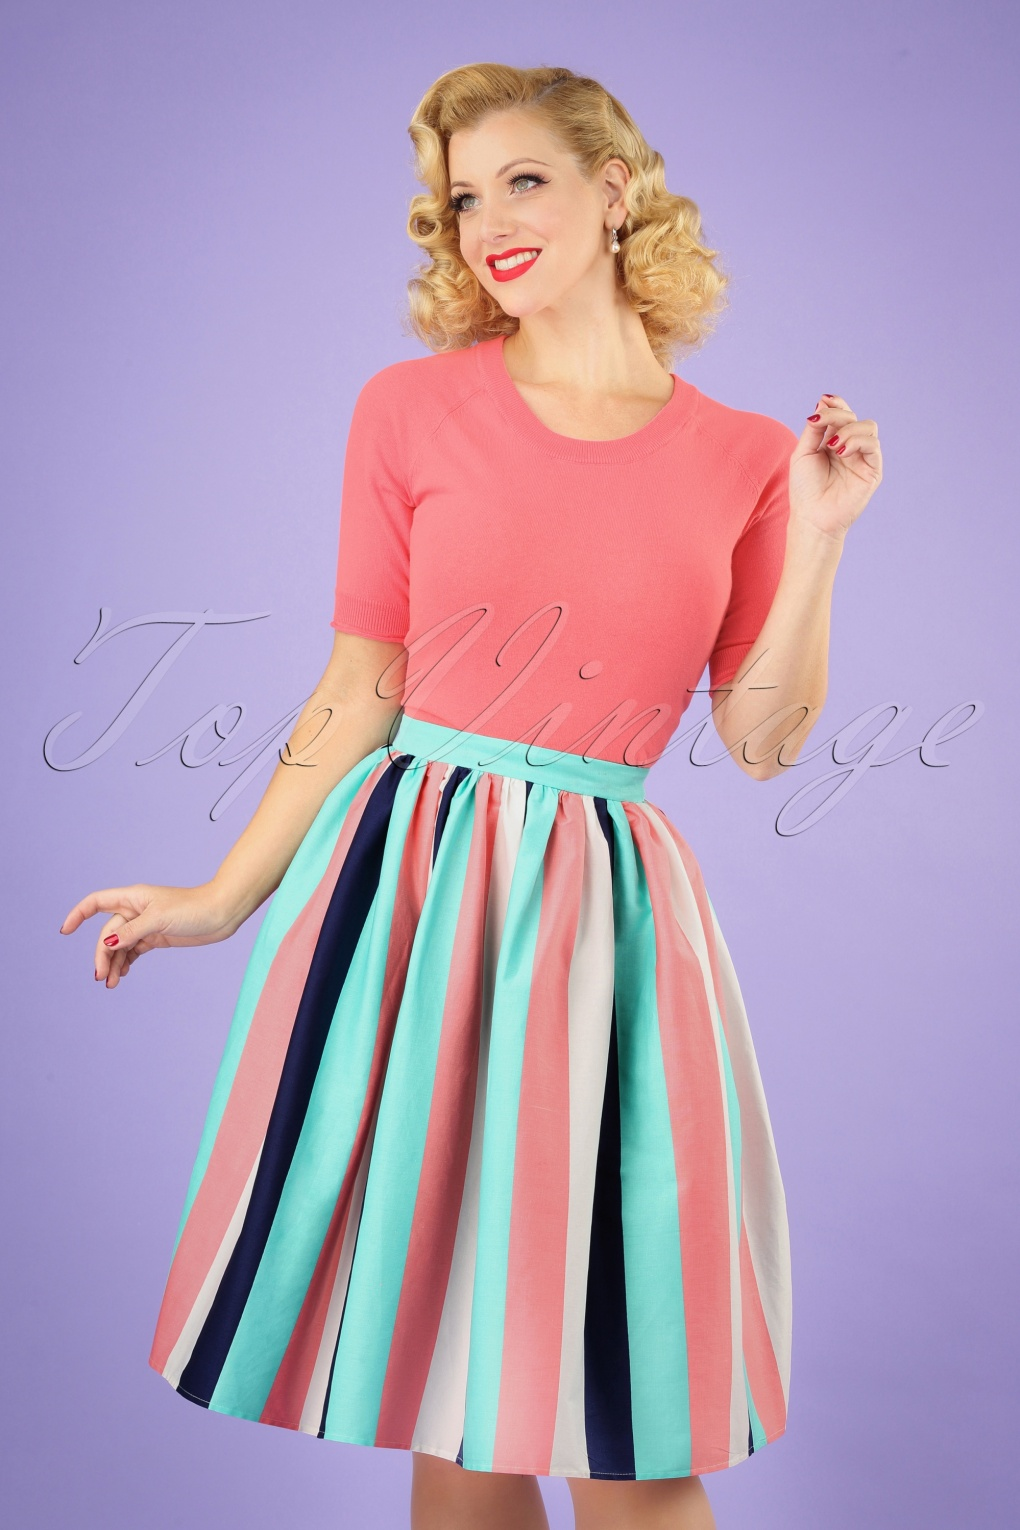 Vintage Cruise Outfits, Vacation Clothing 50s Jasmine Seaside Stripes Swing Skirt in Multi £24.56 AT vintagedancer.com